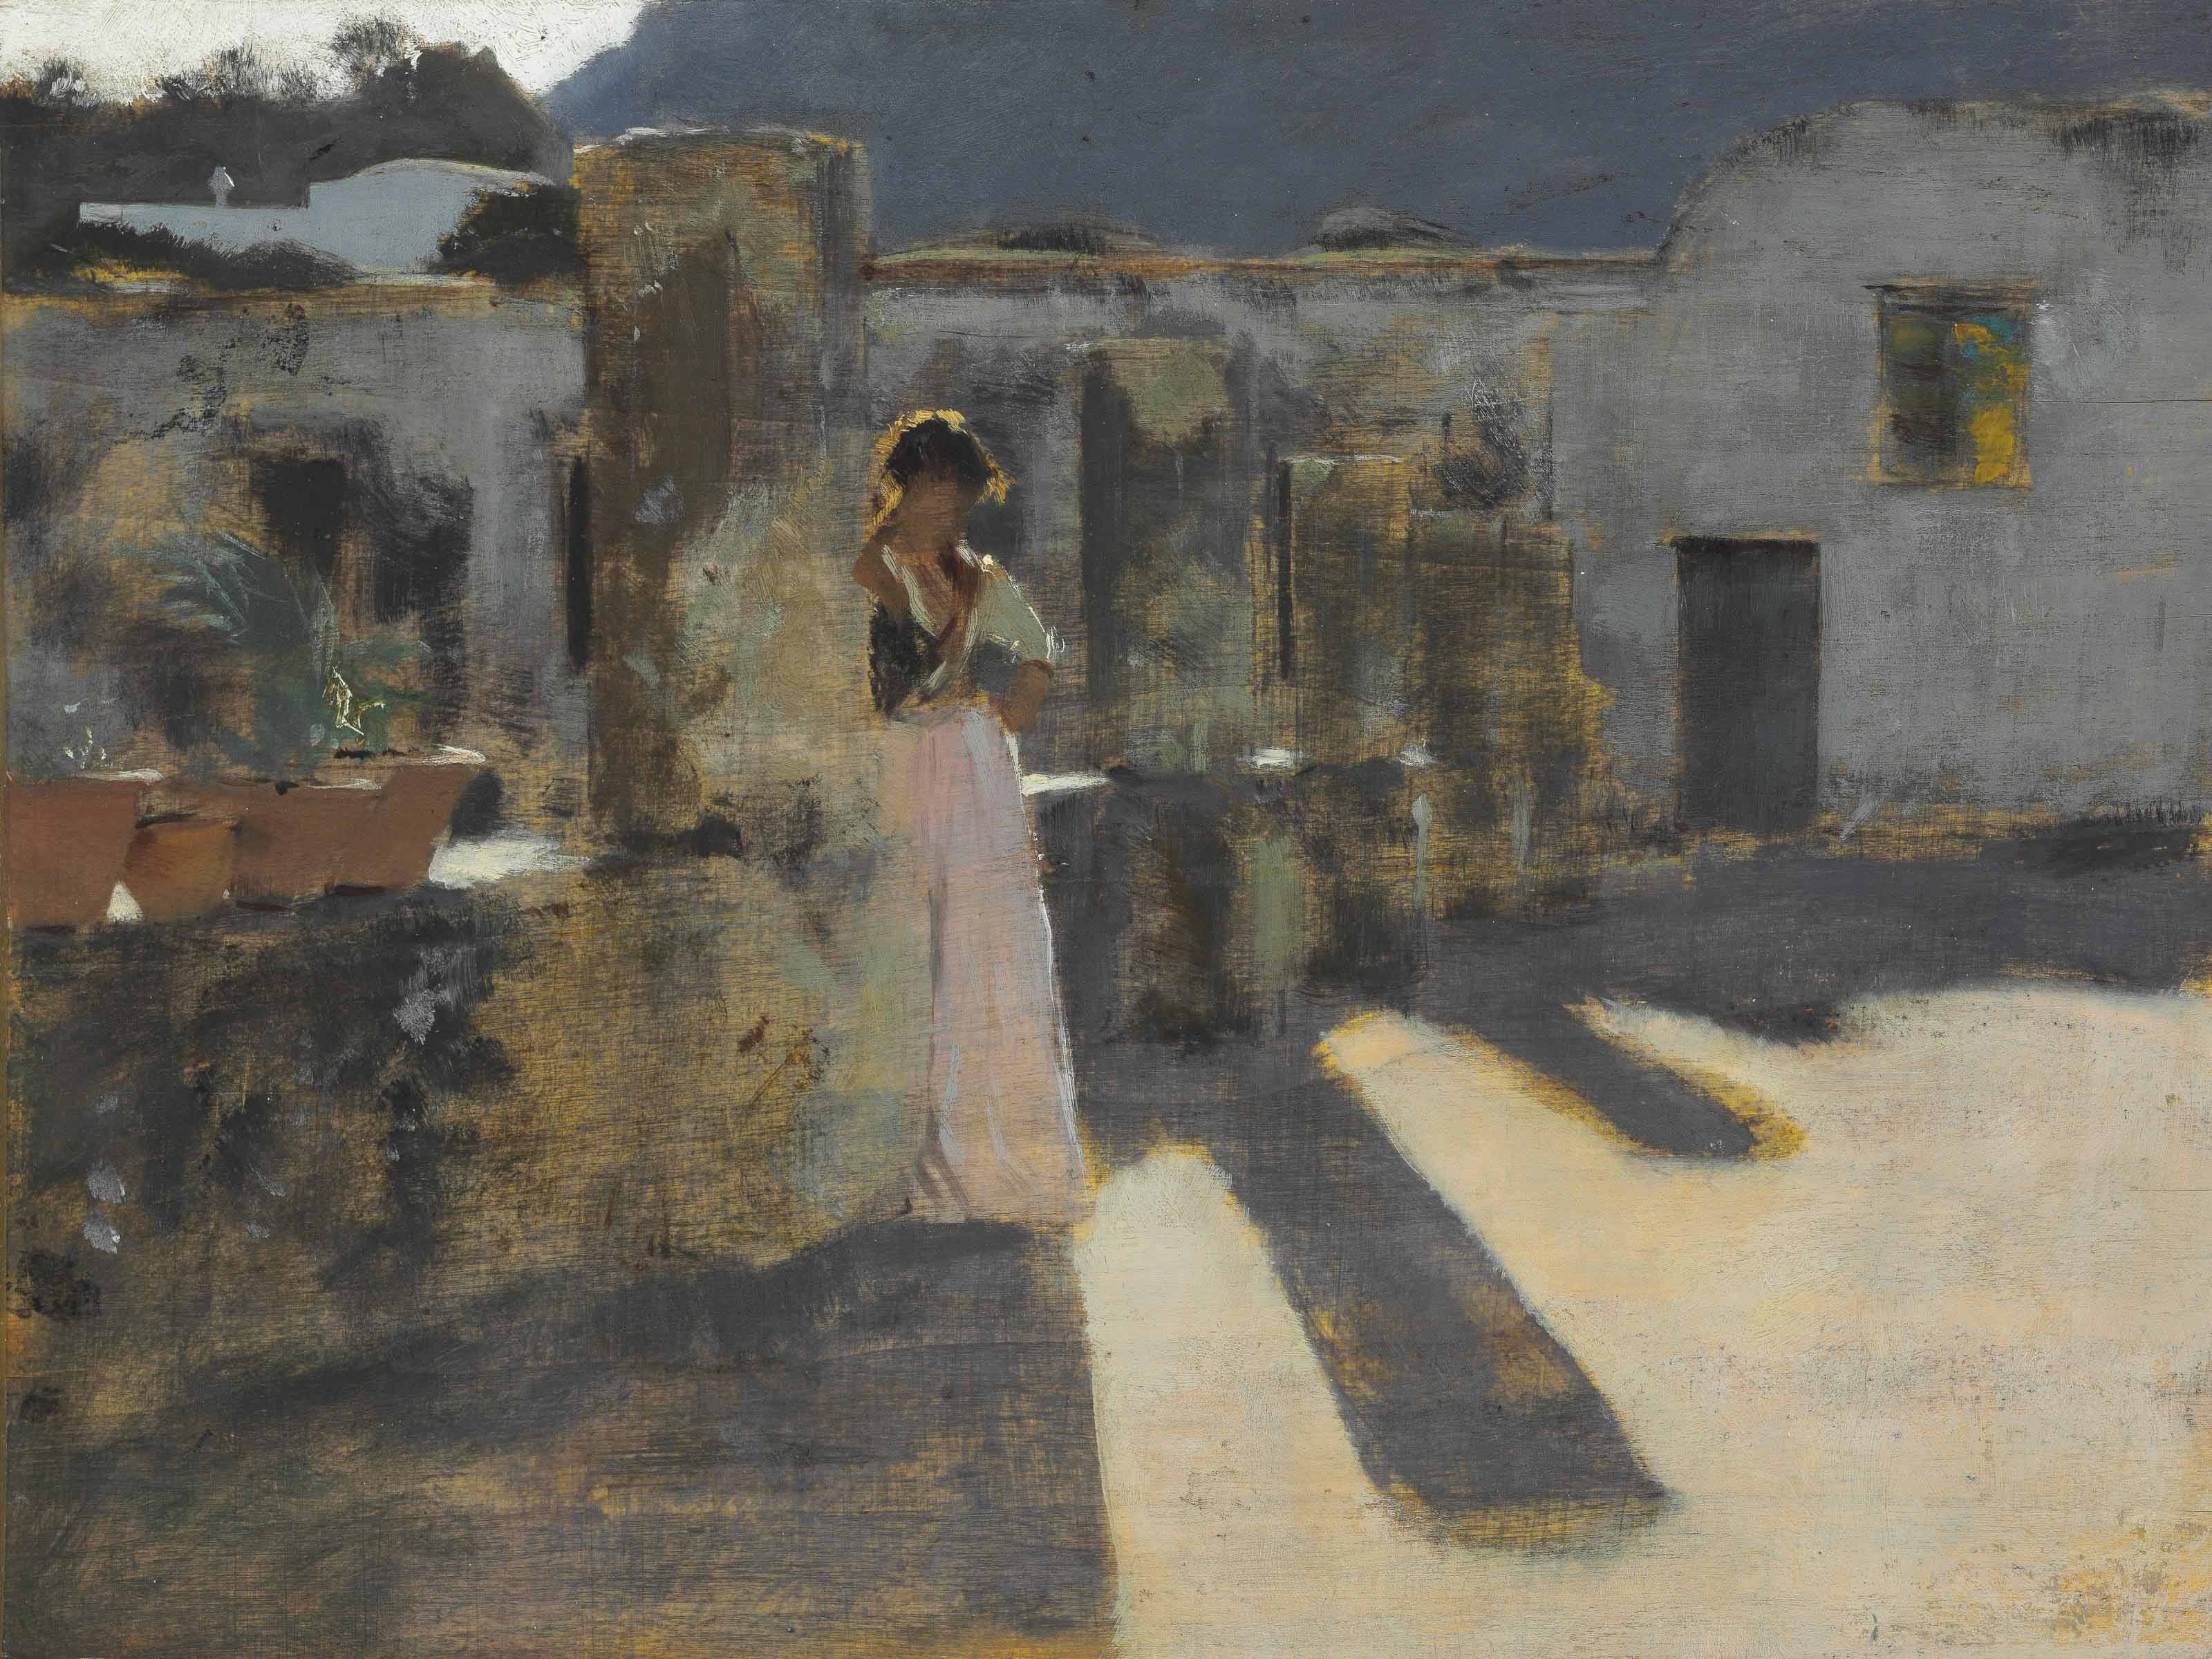 Capri Girl on a Rooftop